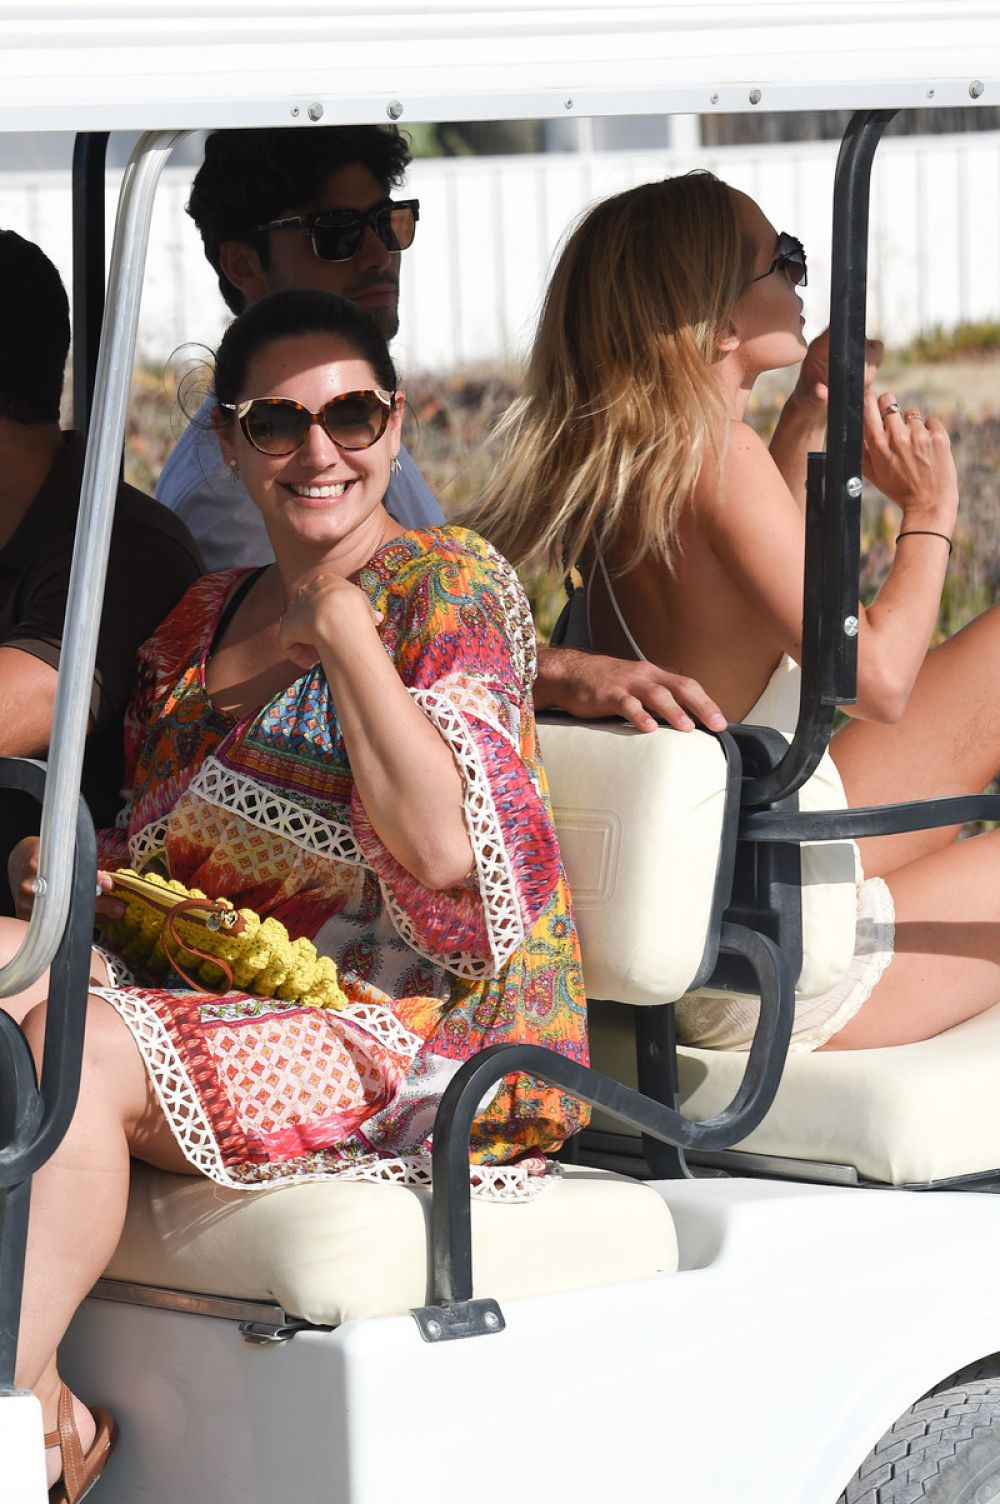 bcb25ee9d0b KIMBERLEY GARNER and KELLY BROOK at a Beach in St. Tropez 07/19/